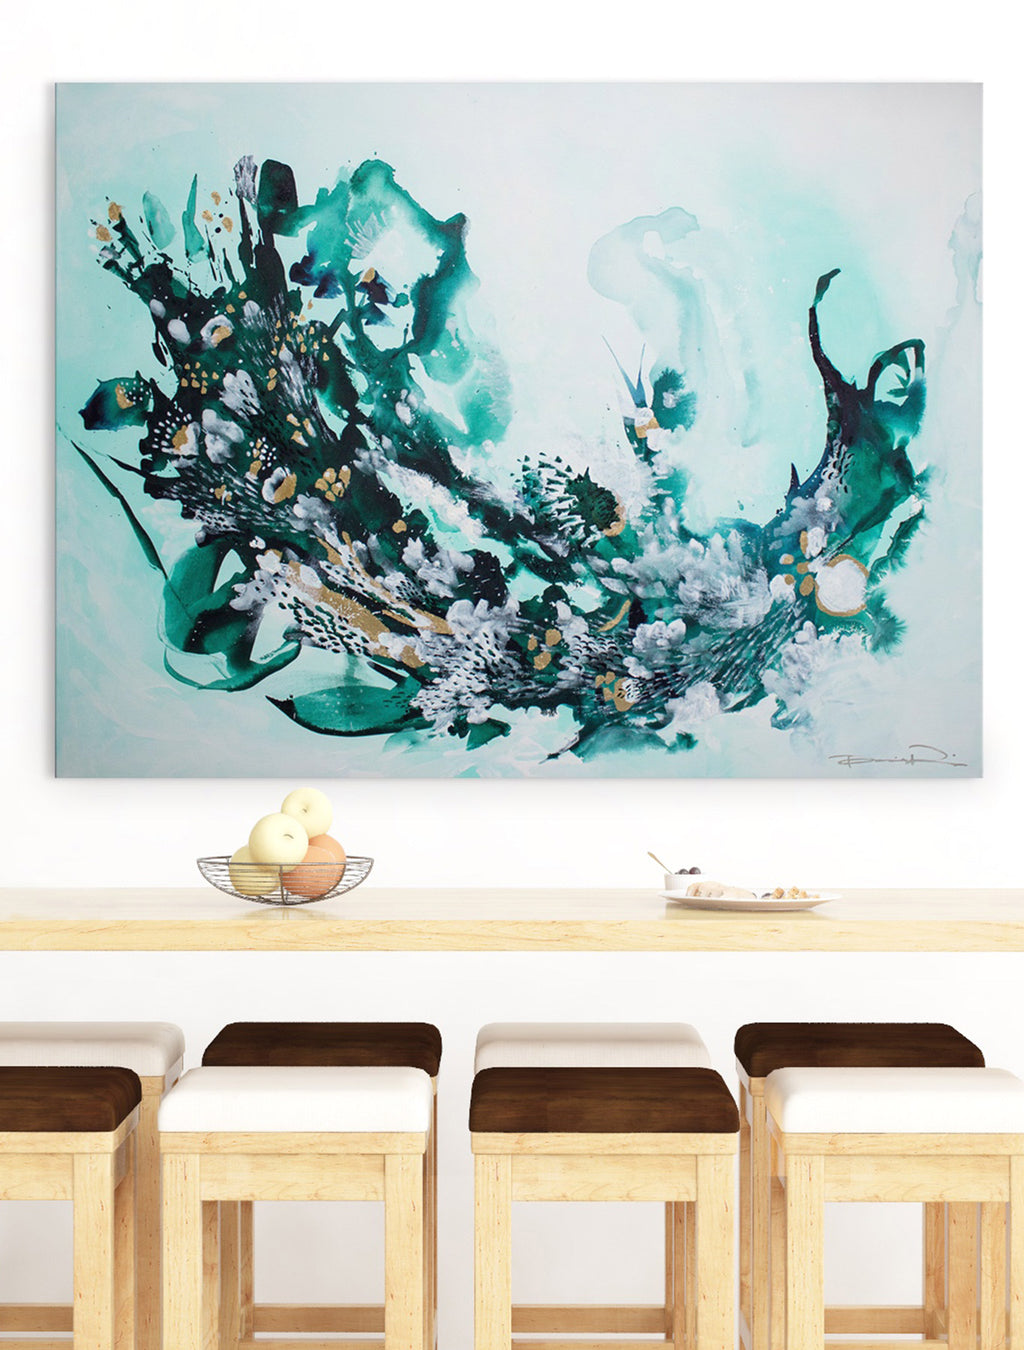 Untouched Coral Reef on Wall - Abstract Painting By Paige Ring